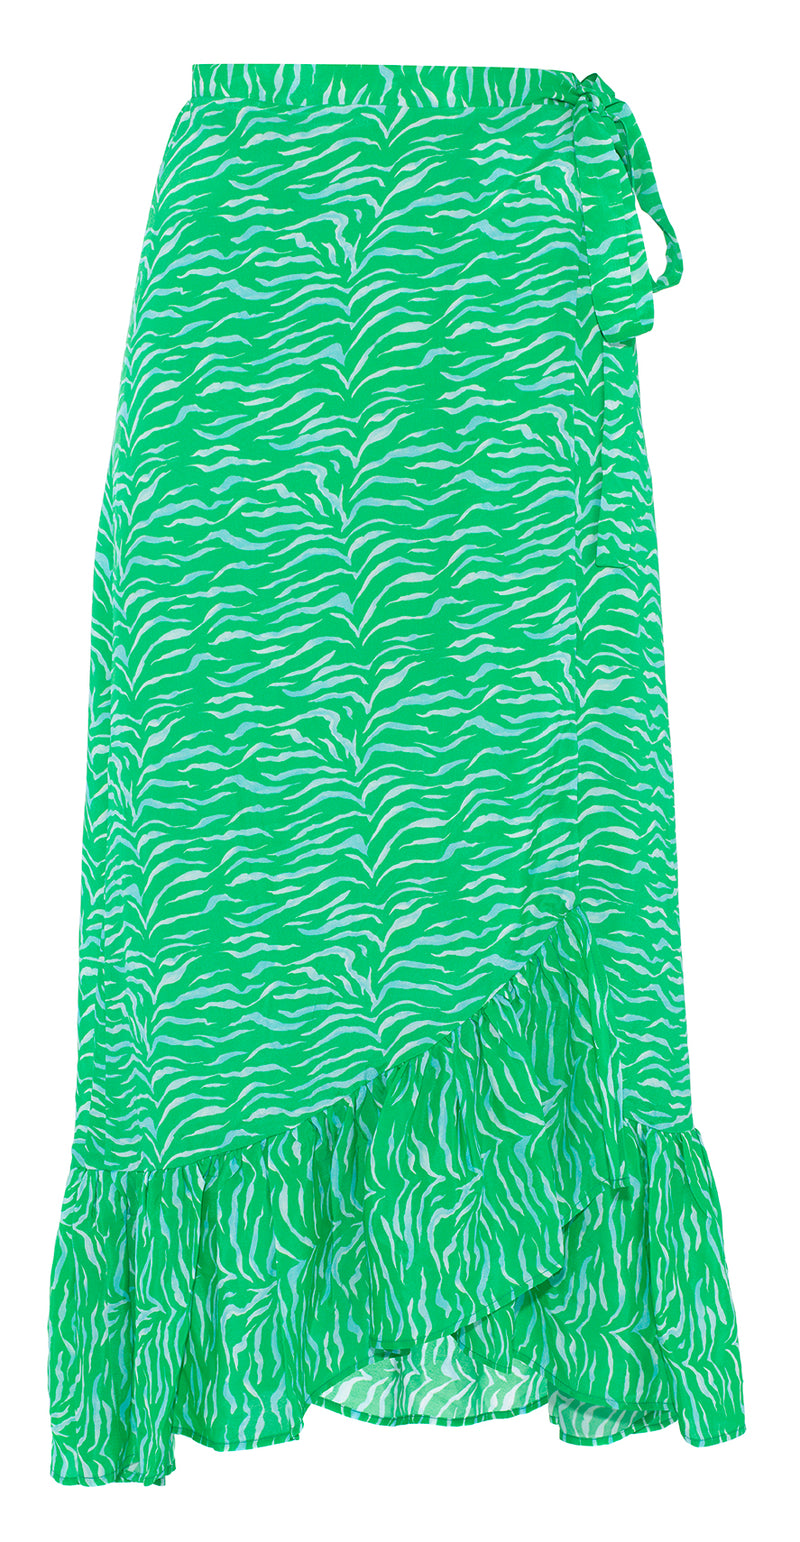 Primrose Park Simi silk blend tiger print wrap midi skirt in emerald green